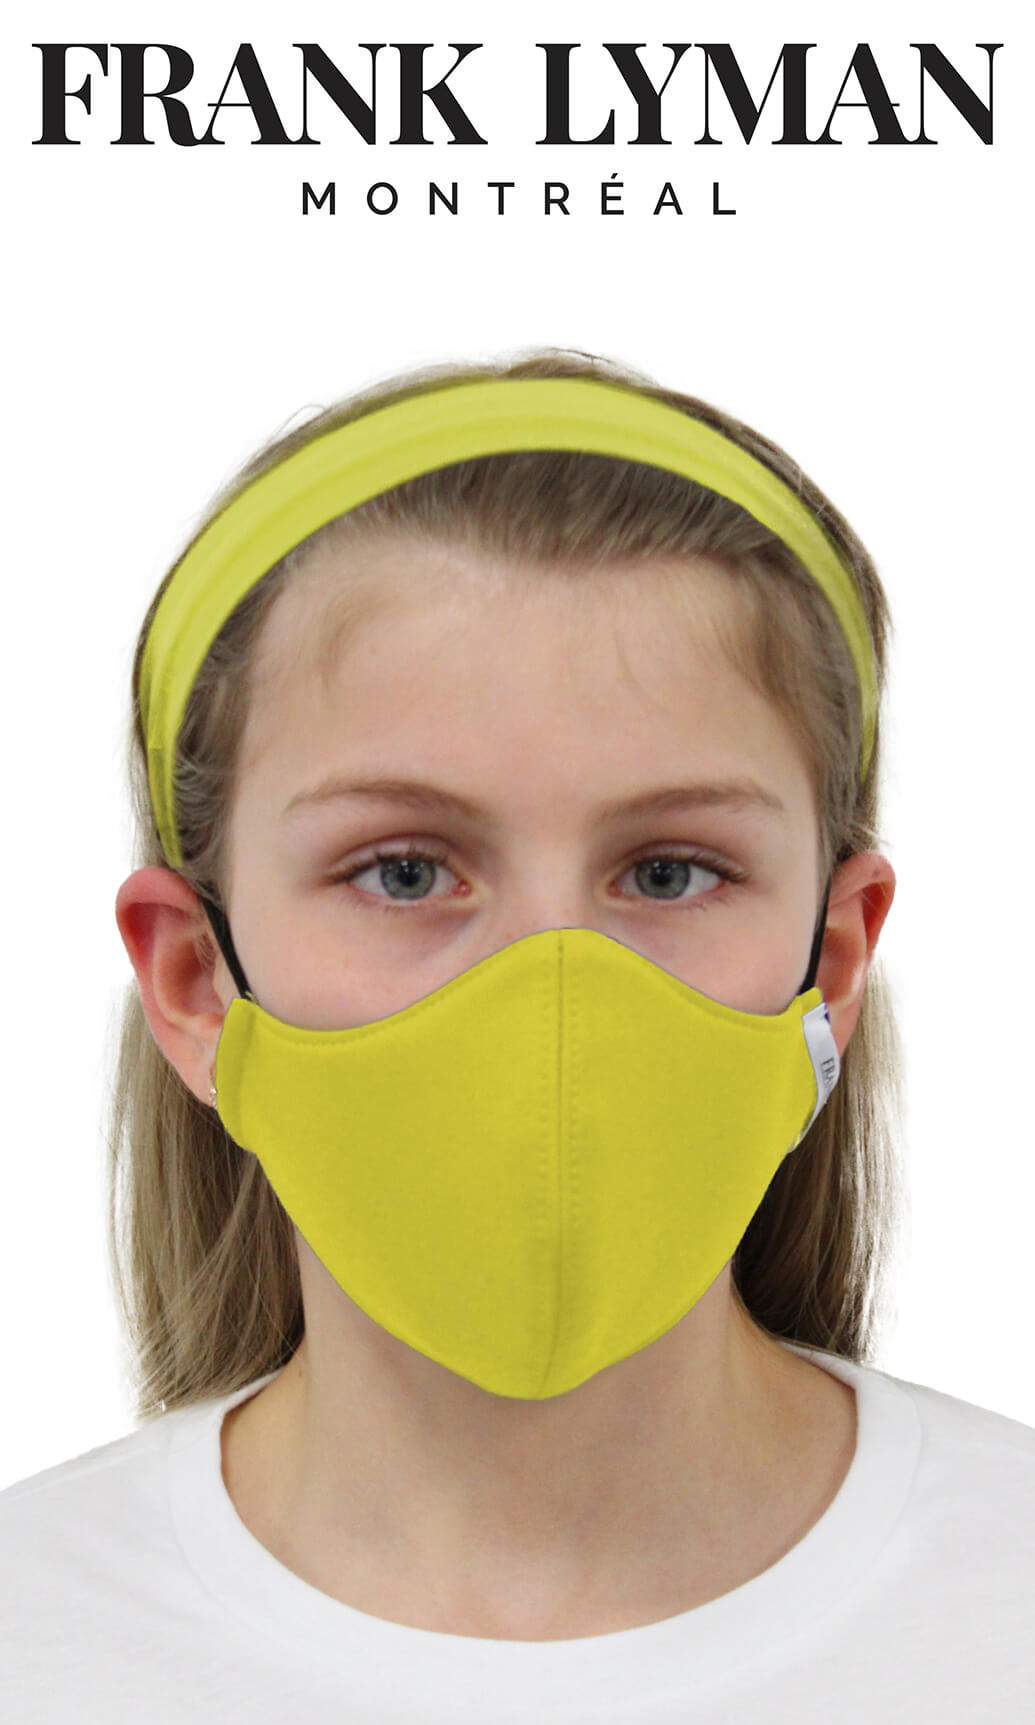 Frank Lyman Non-Medical Face Mask Small Adult/Kids Citrus - Fab Frocks